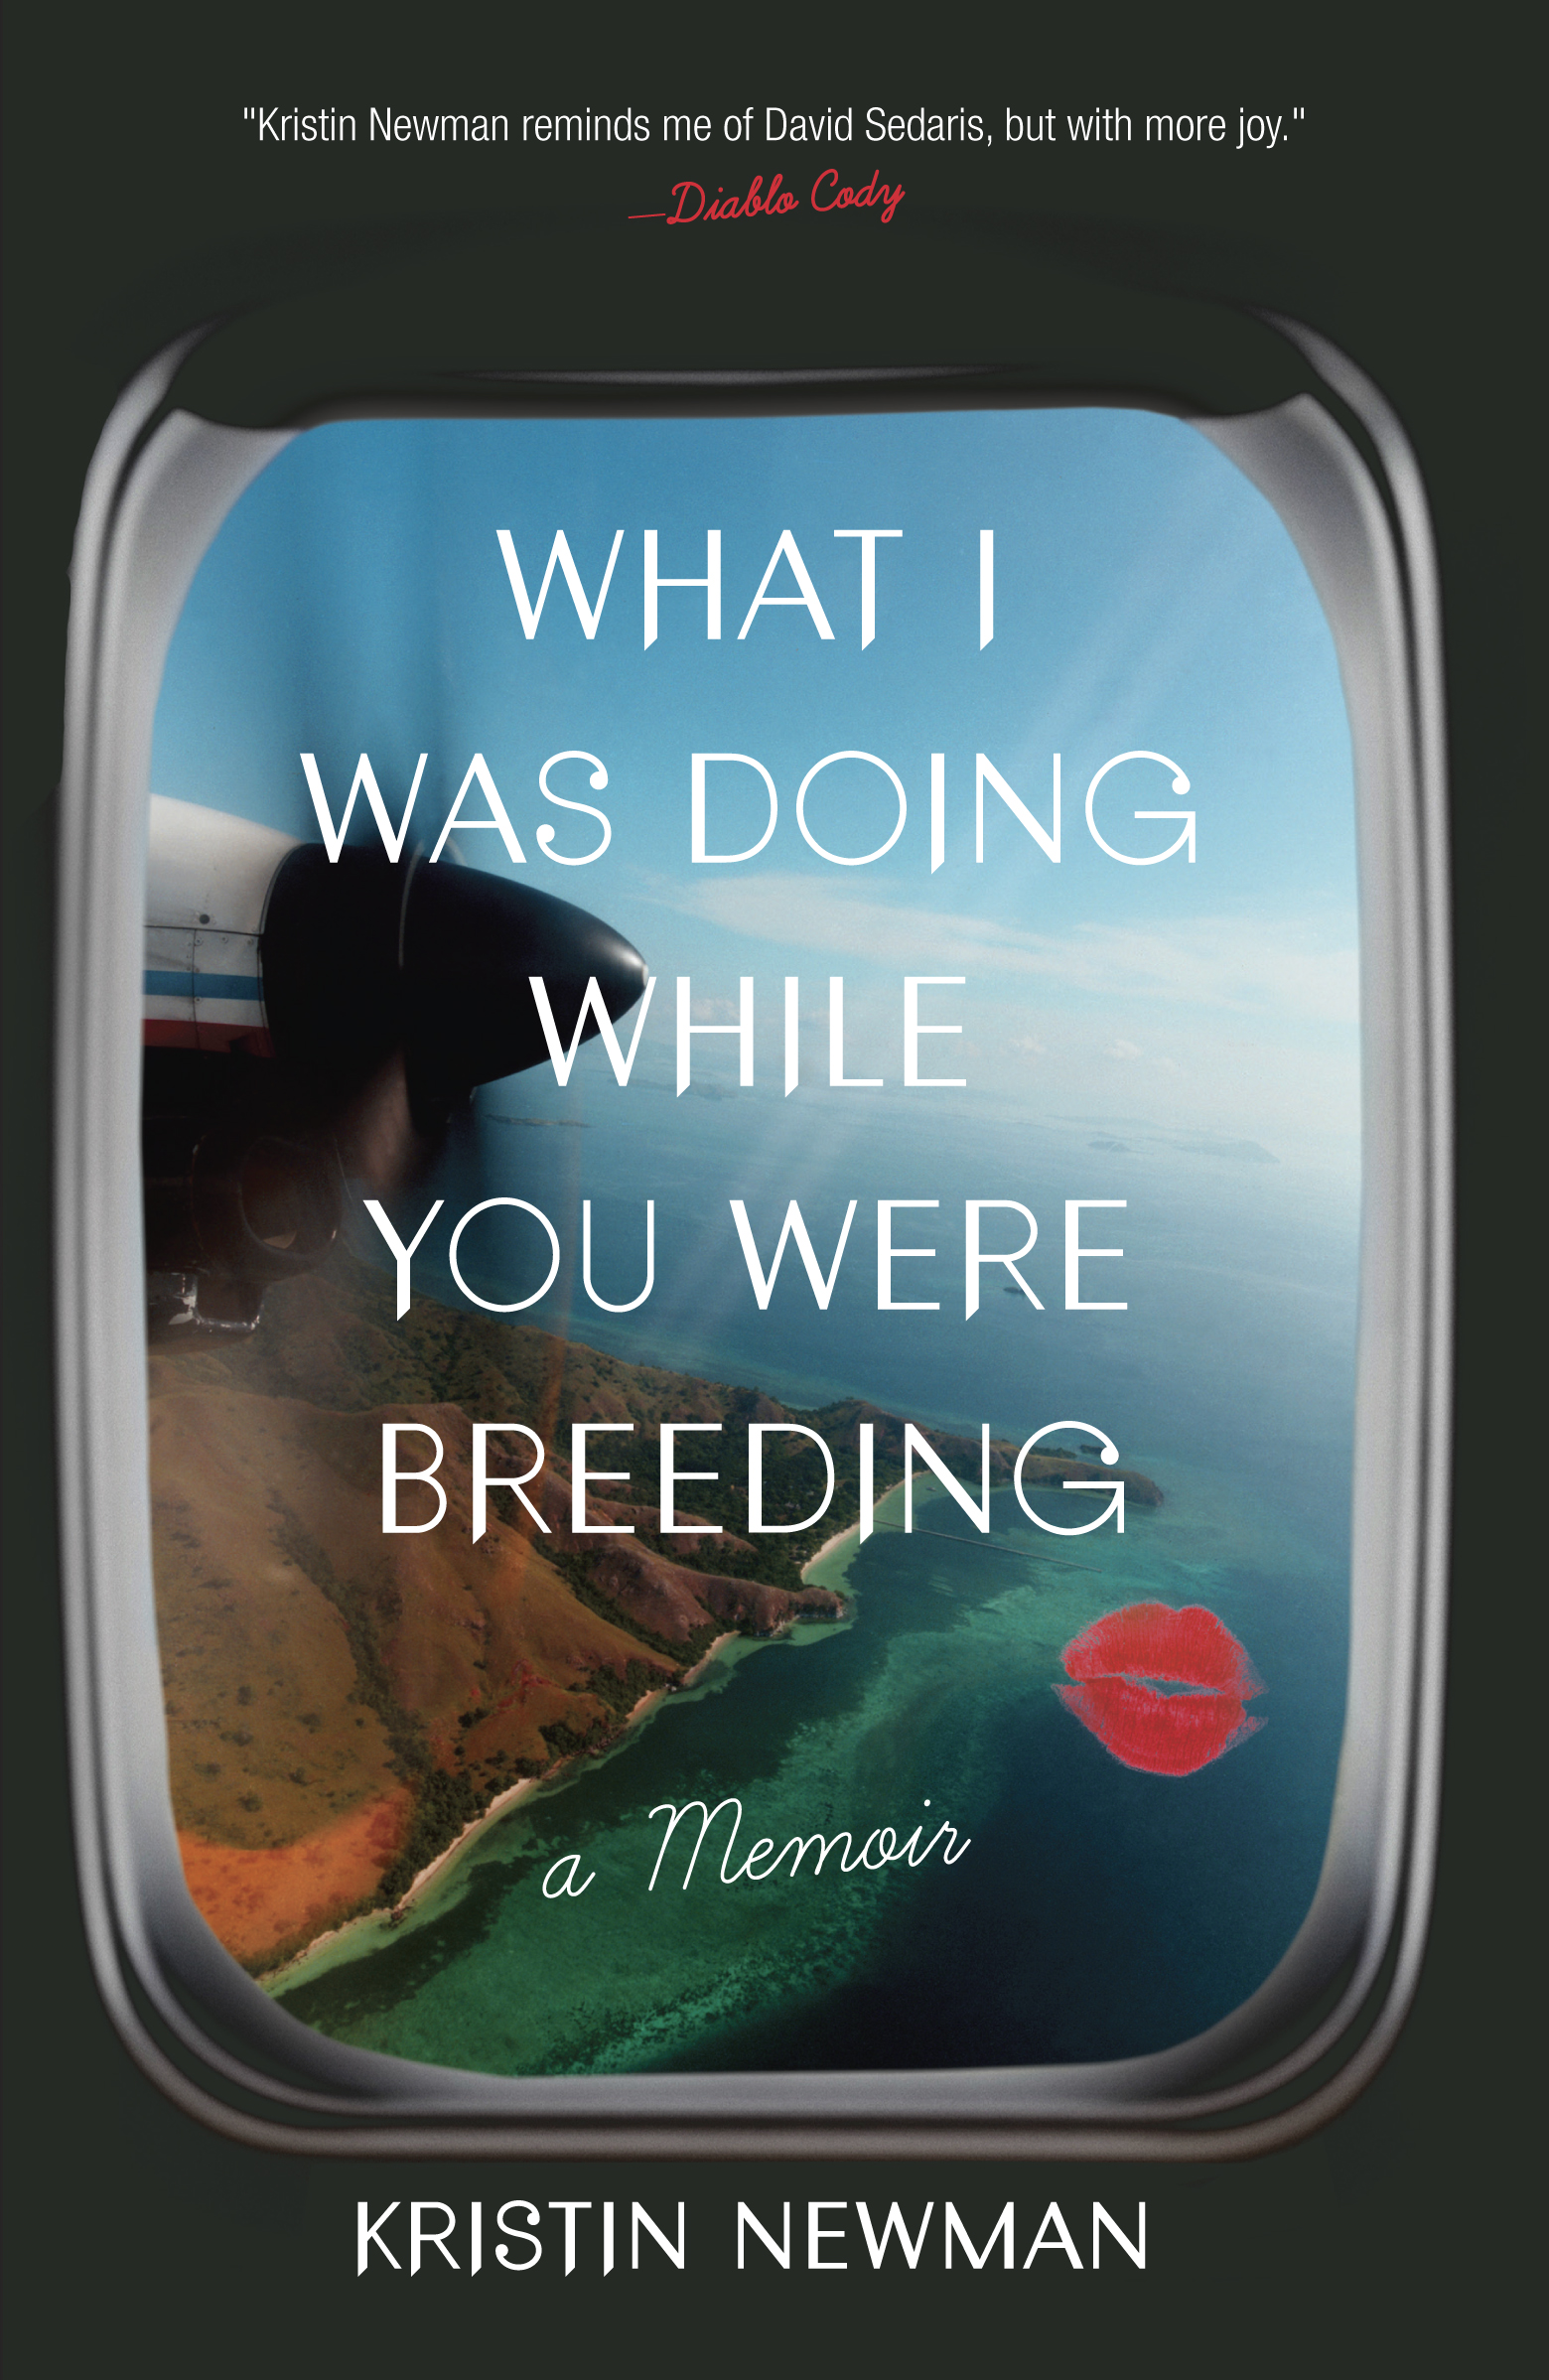 What I Was Doing While You Were Breeding, by Kristin Newman